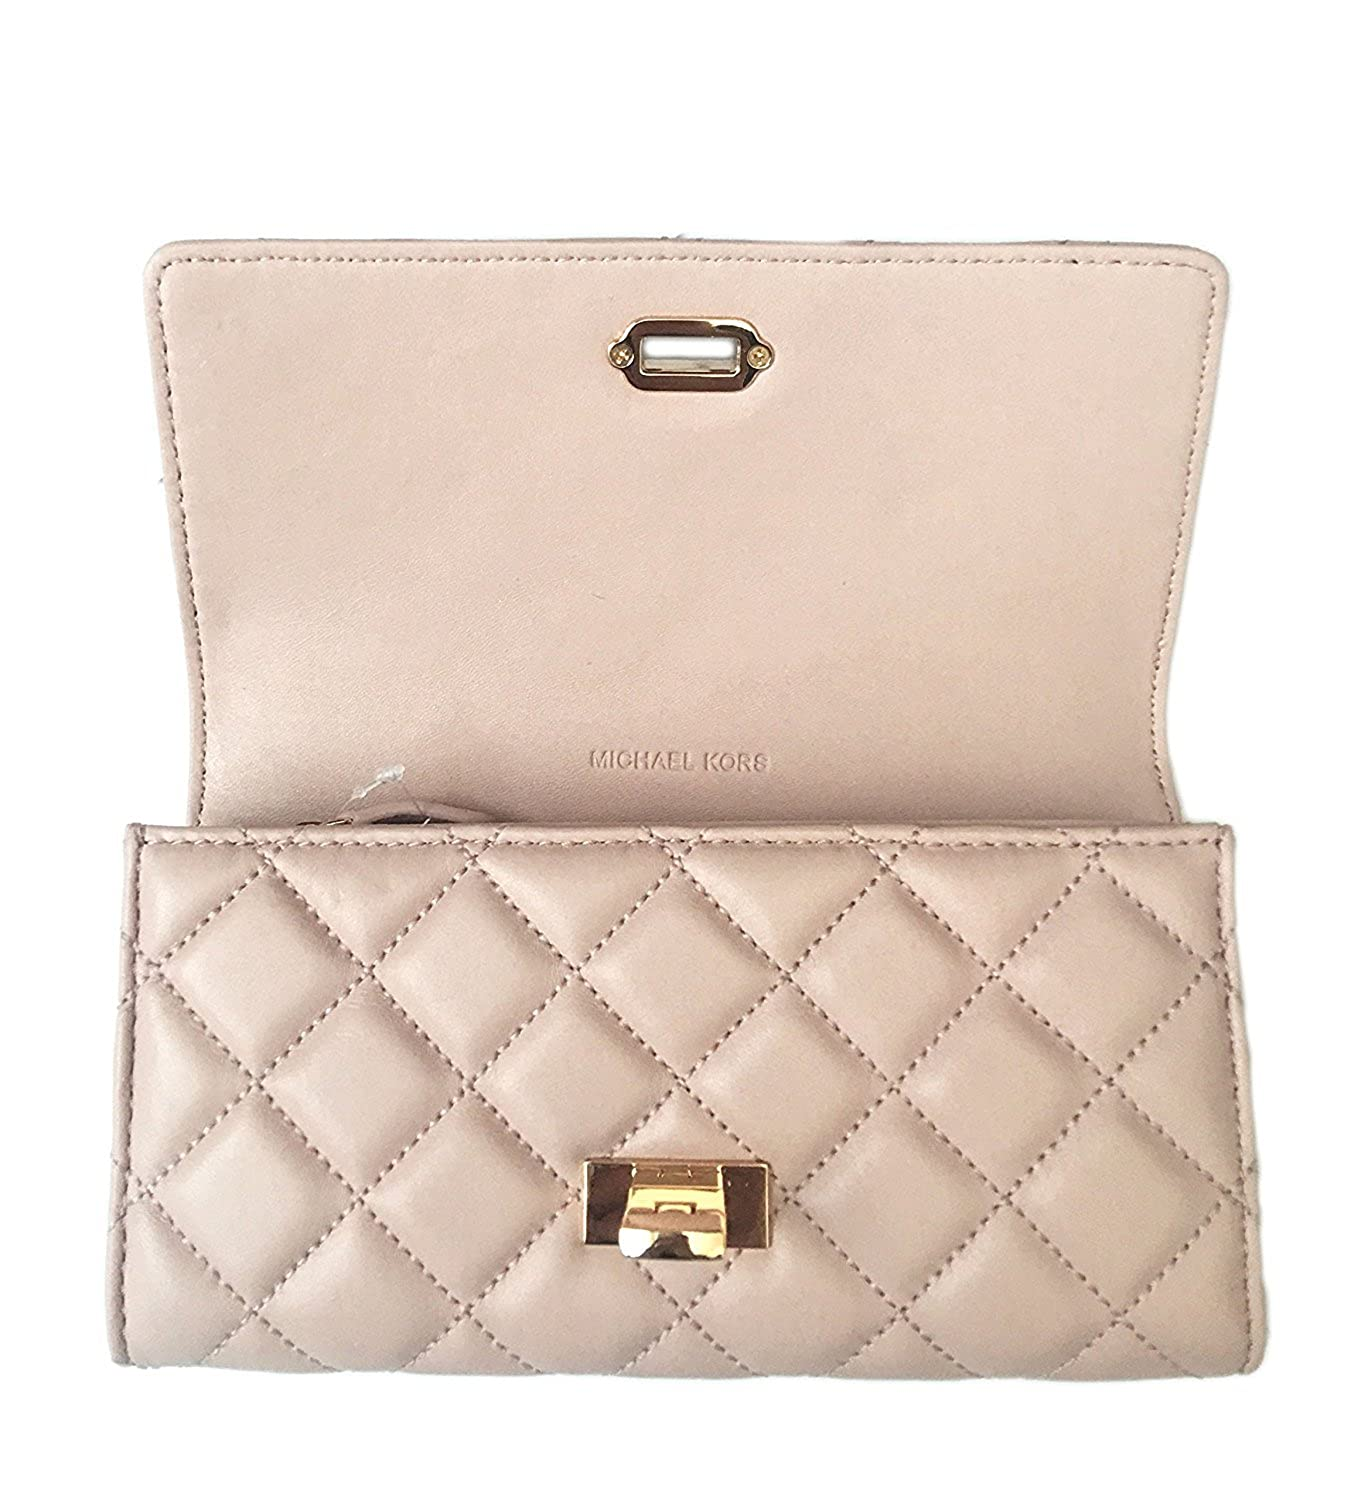 e0f6c50e39efbe Michael Kors Astrid Quilt Leather Carryall Wallet (Ballet Pink/Gold):  Amazon.ca: Clothing & Accessories